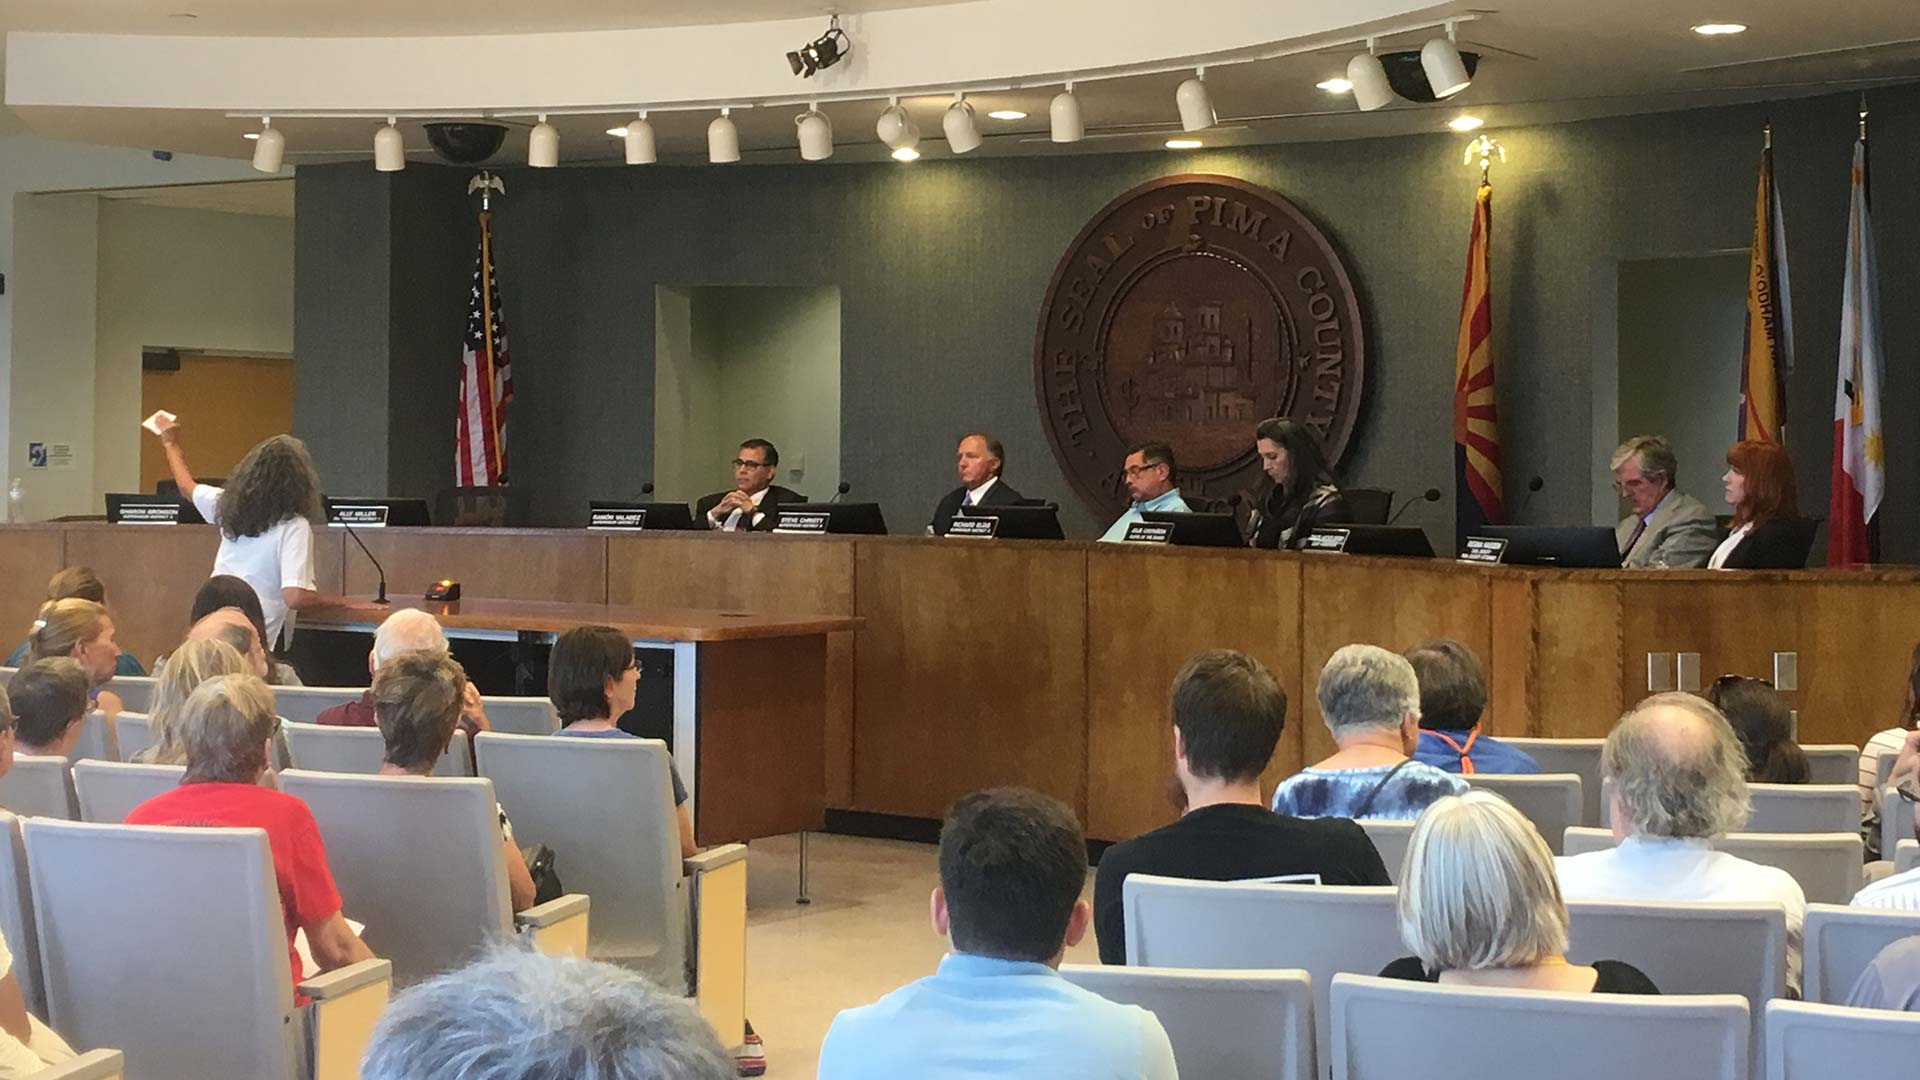 The Board of Supervisors hears public comment on the proposed plan to allow Catholic Community Services to use a portion of the county's juvenile detention center as a shelter for asylum seekers, July 22, 2019.